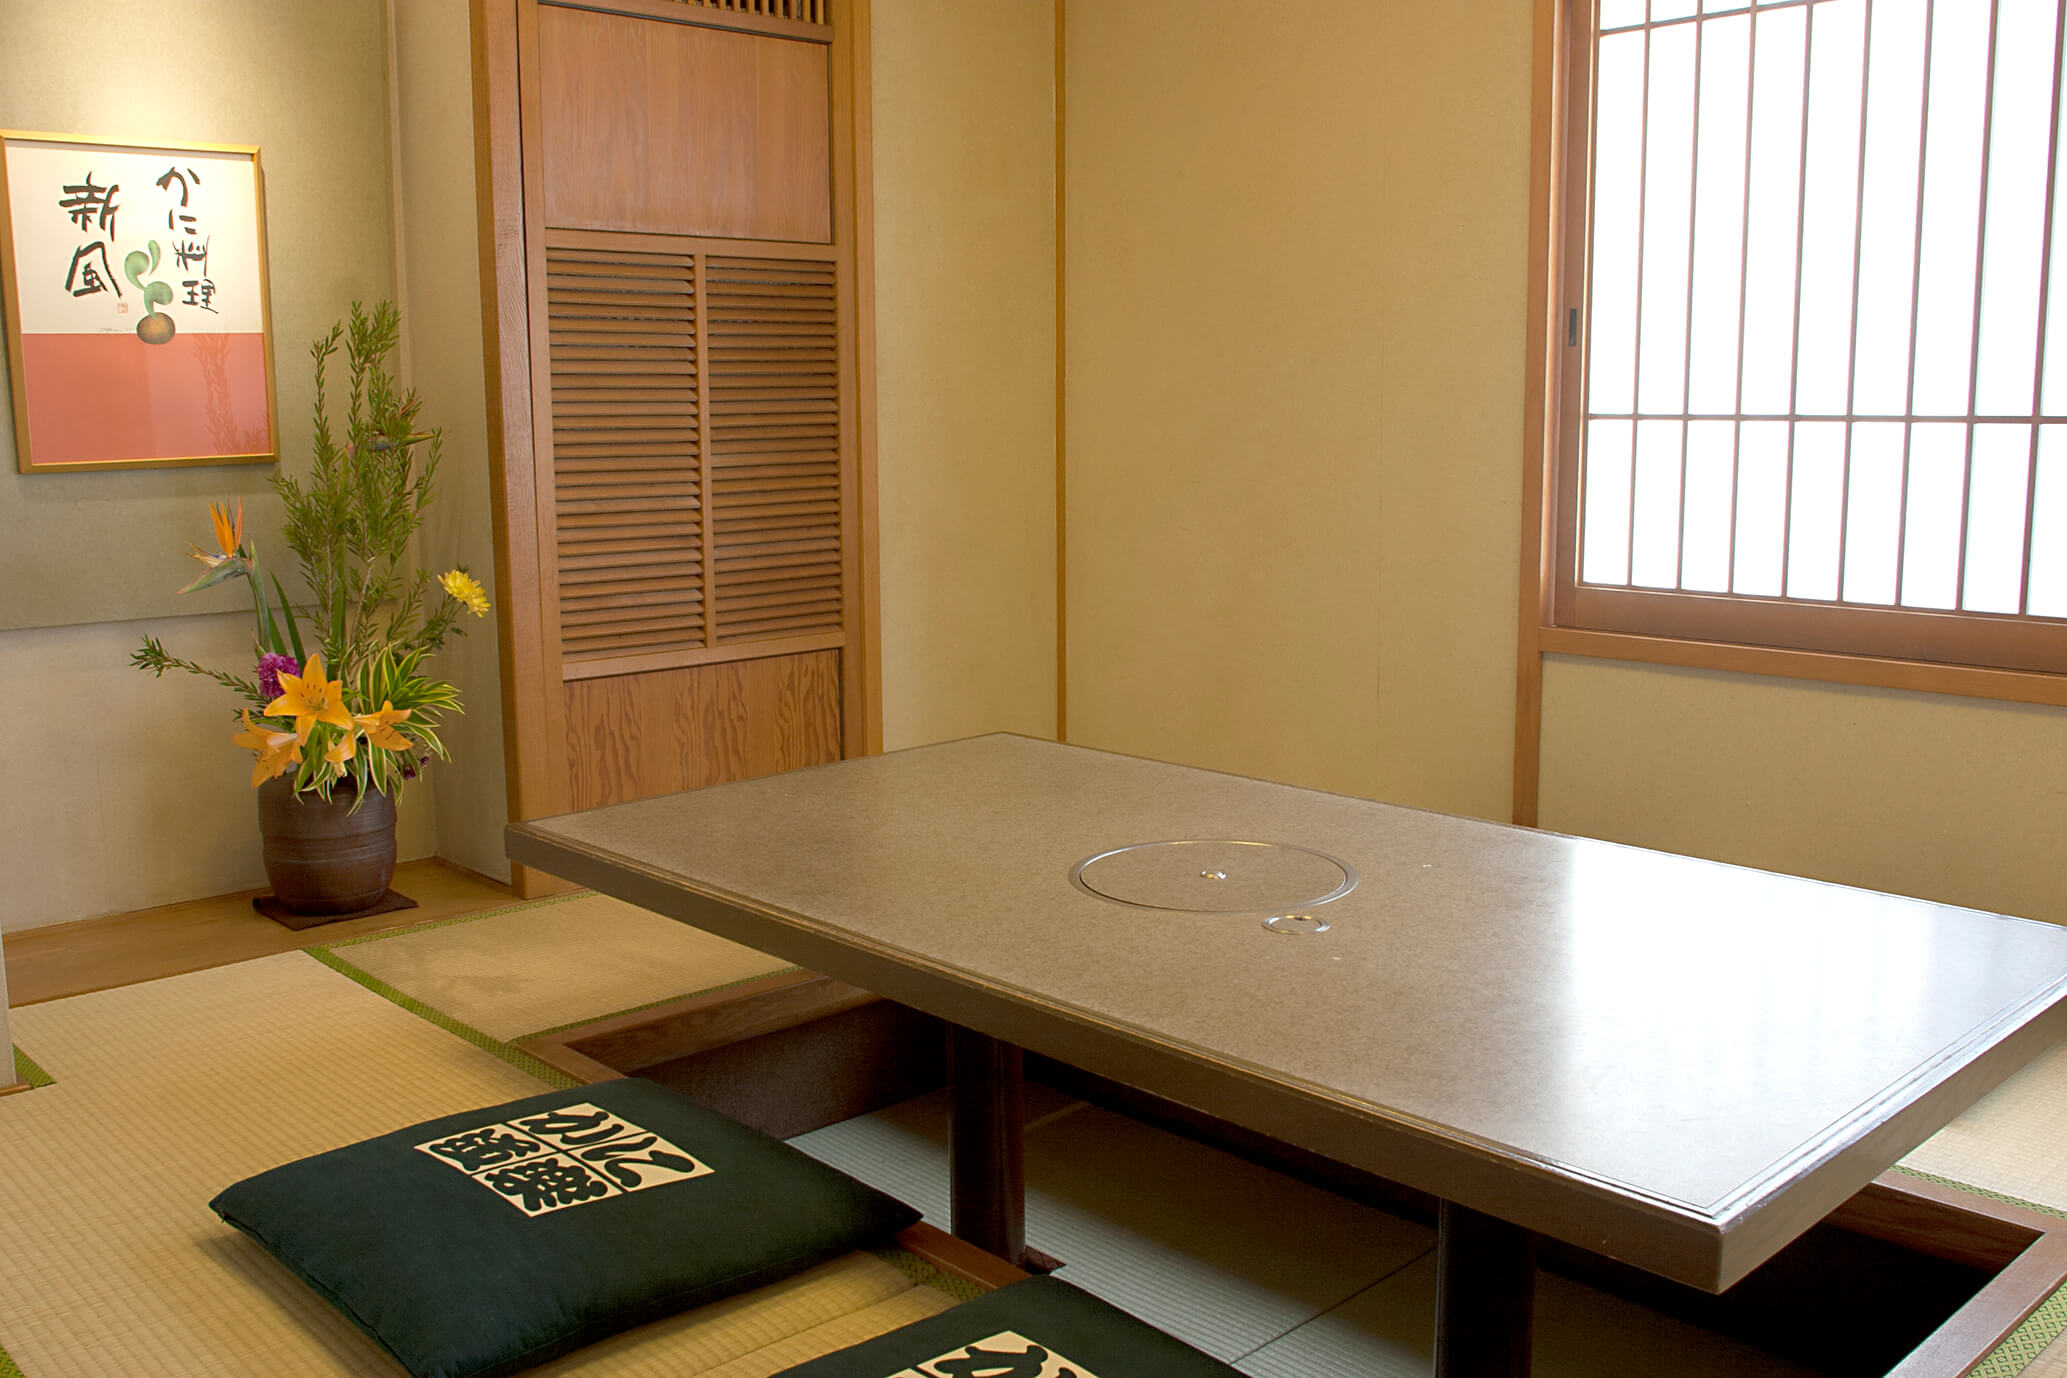 Room (dig seat) of Dotombori nakamise(Mid) branch introspectiveness - big things and small things